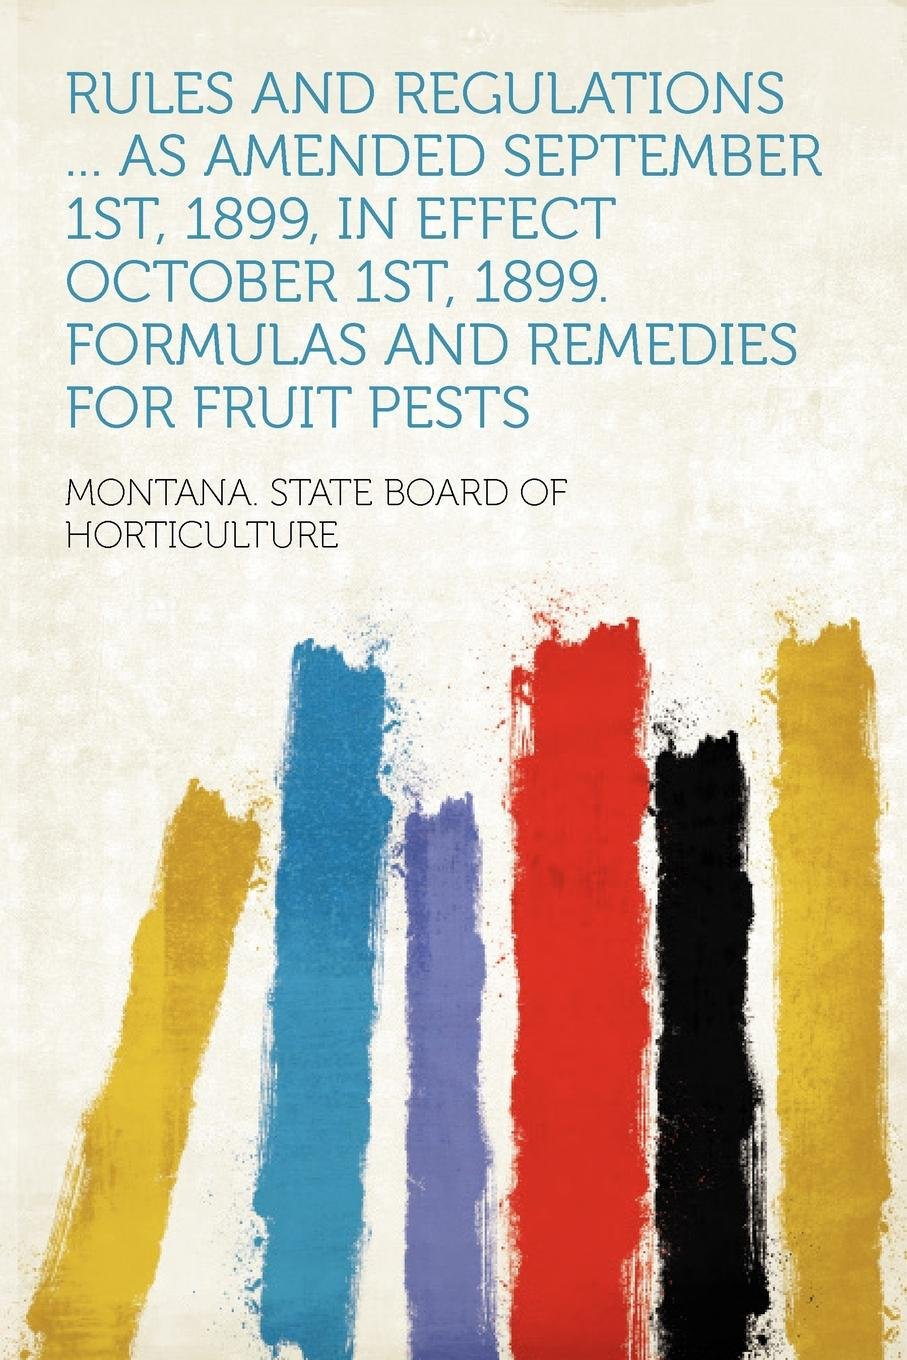 Download Rules and Regulations ... as Amended September 1st, 1899, in Effect October 1st, 1899. Formulas and Remedies for Fruit Pests pdf